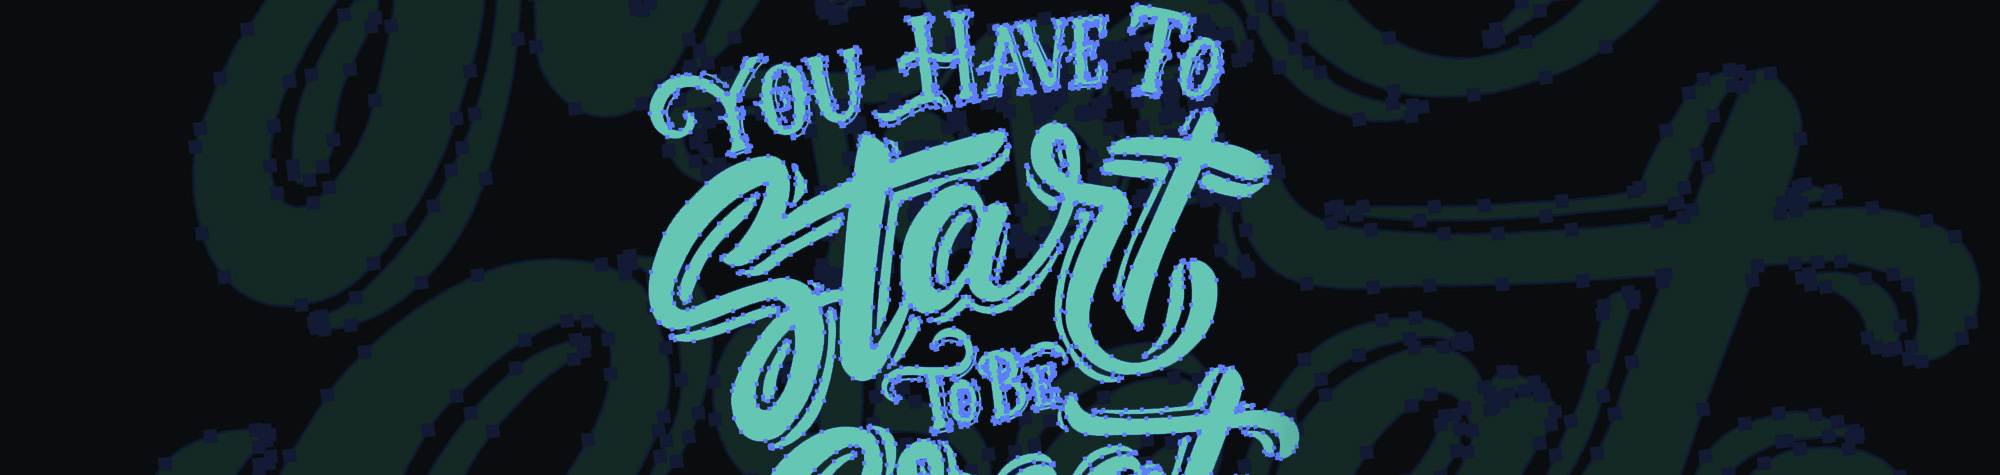 Live Trace Hand Lettering & Fonts for Logos in Adobe Illustrator & Photoshop